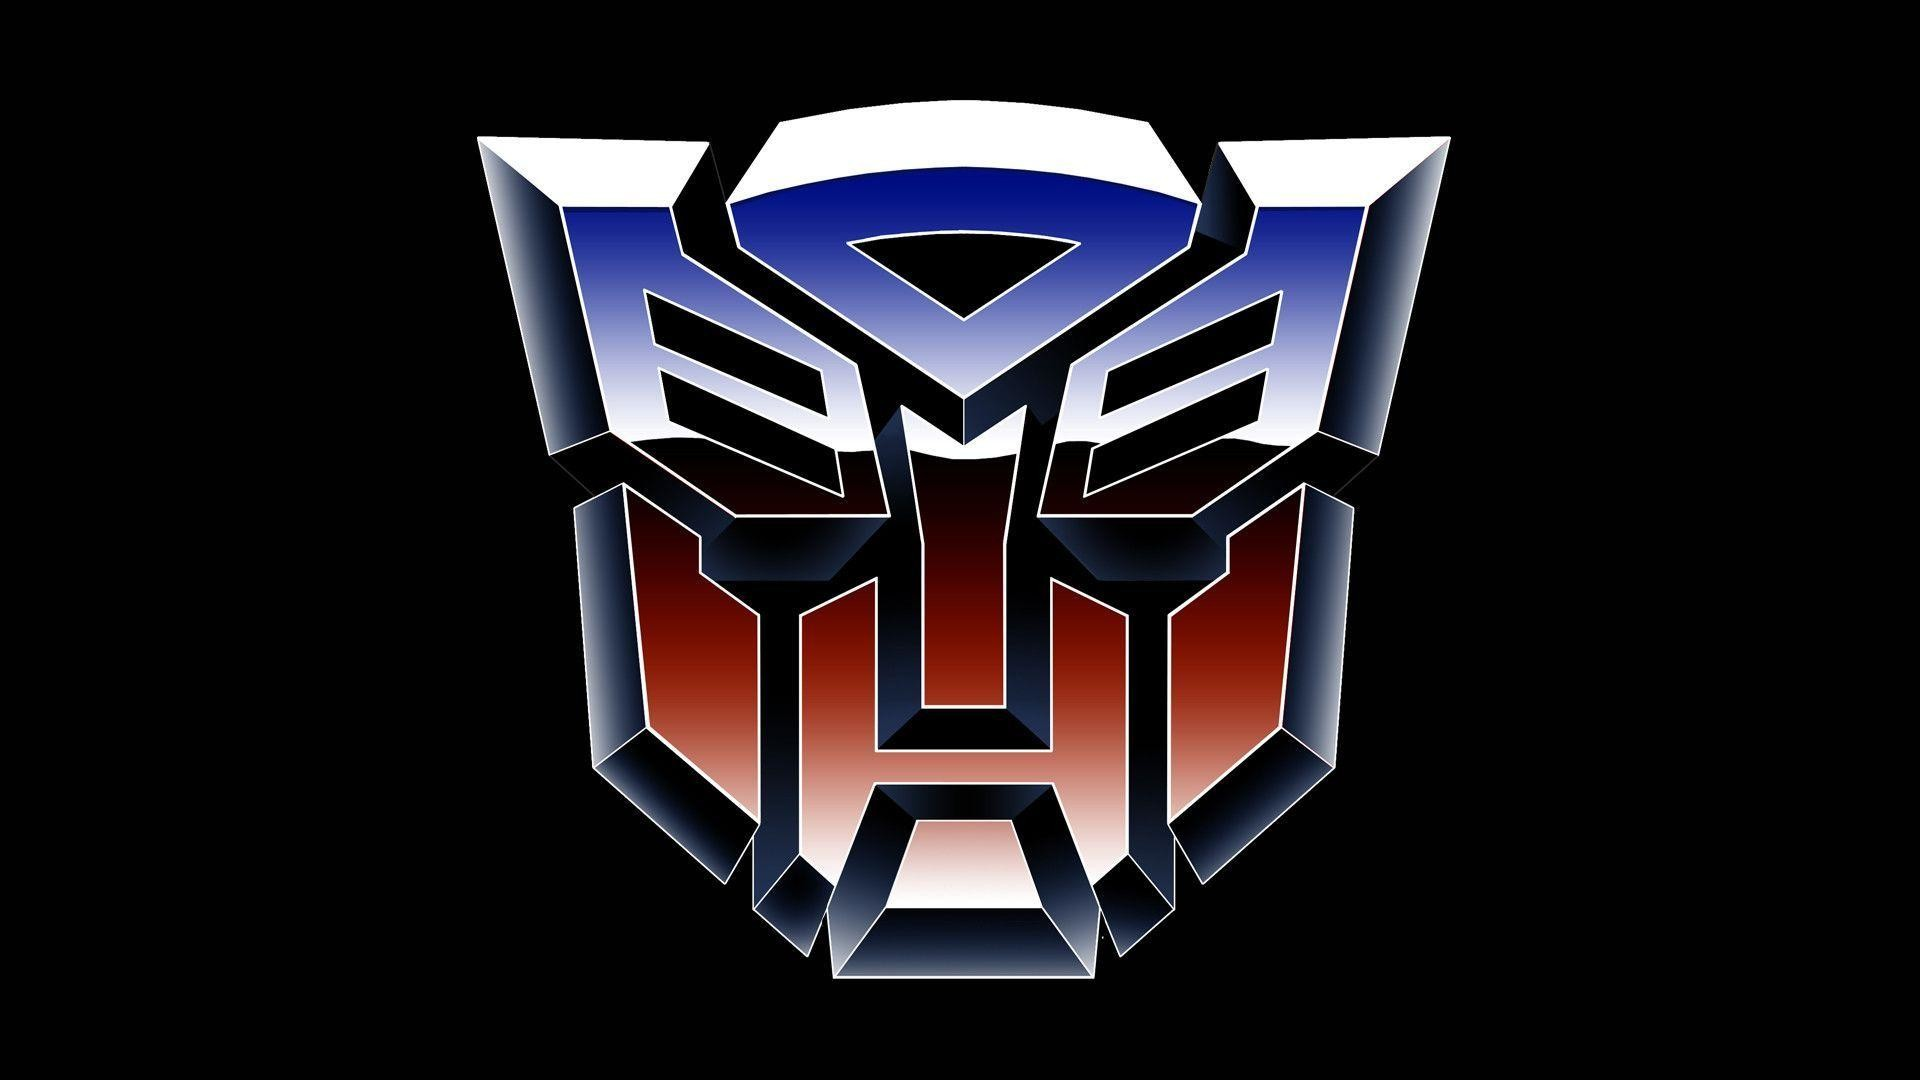 Res: 1920x1080, Transformers Autobot Logo Wallpaper 1280x1024 px Free Download .